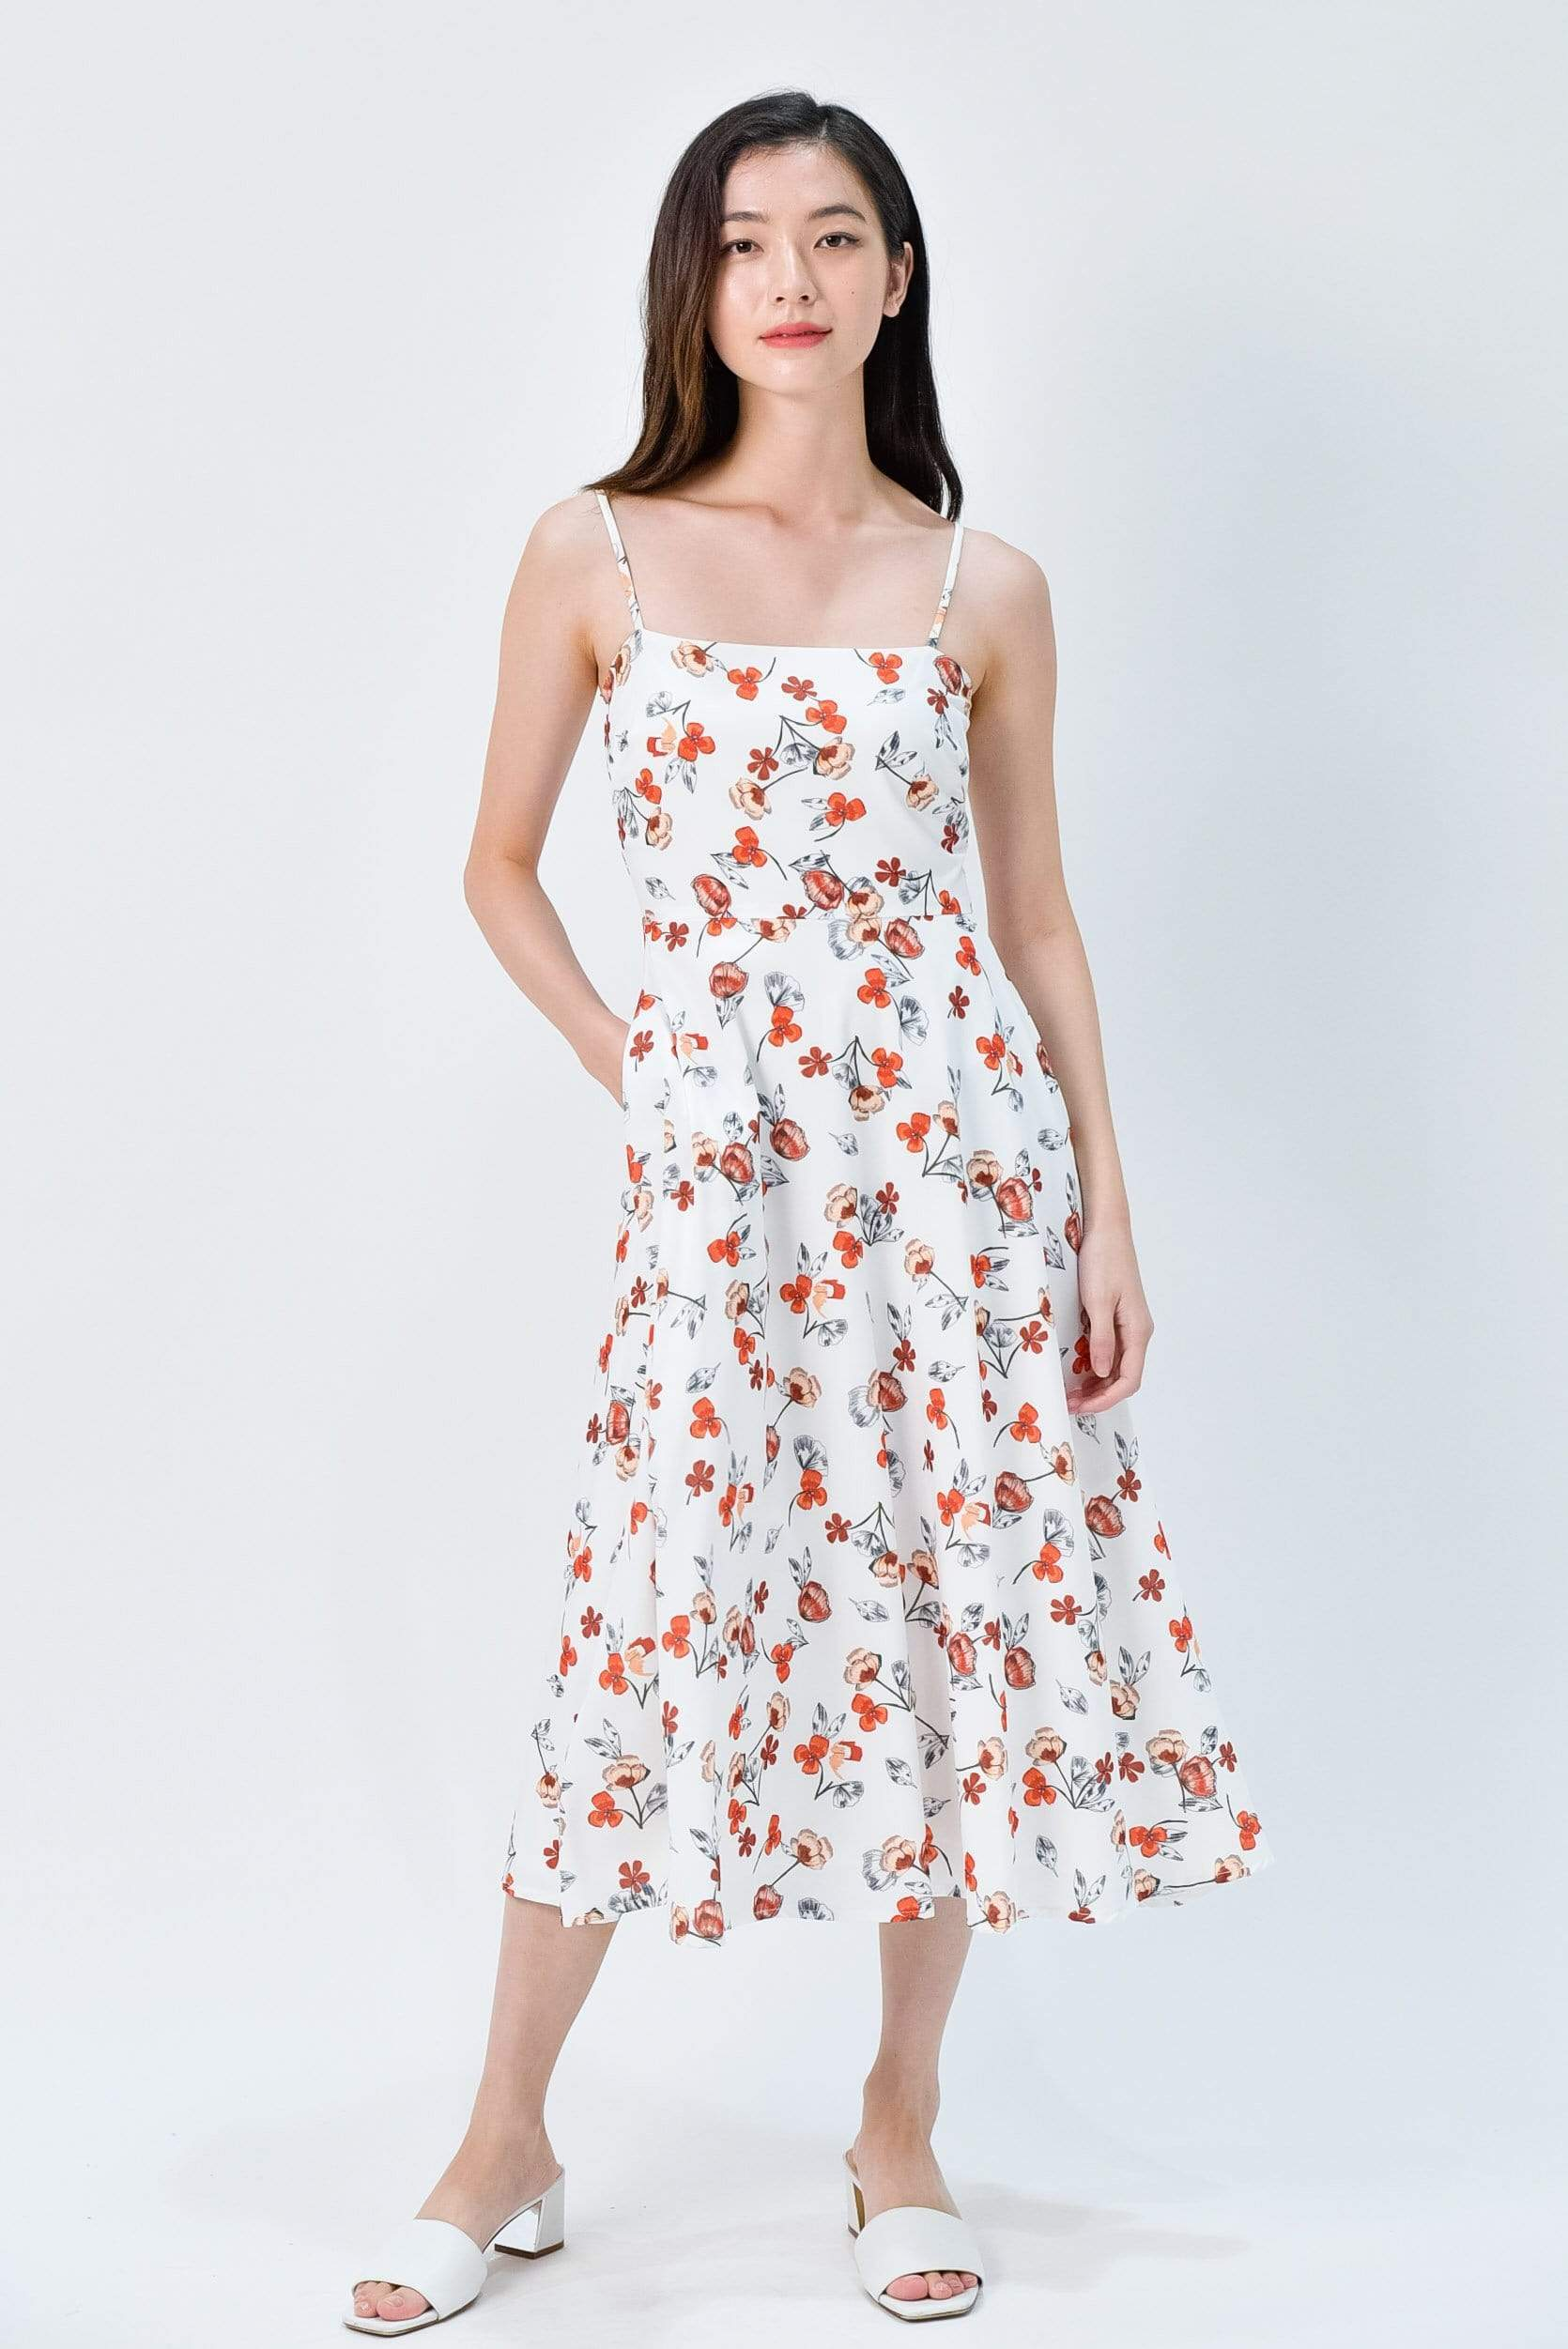 MAPLE WHITE FLORAL FIT AND FLARE MIDI DRESS